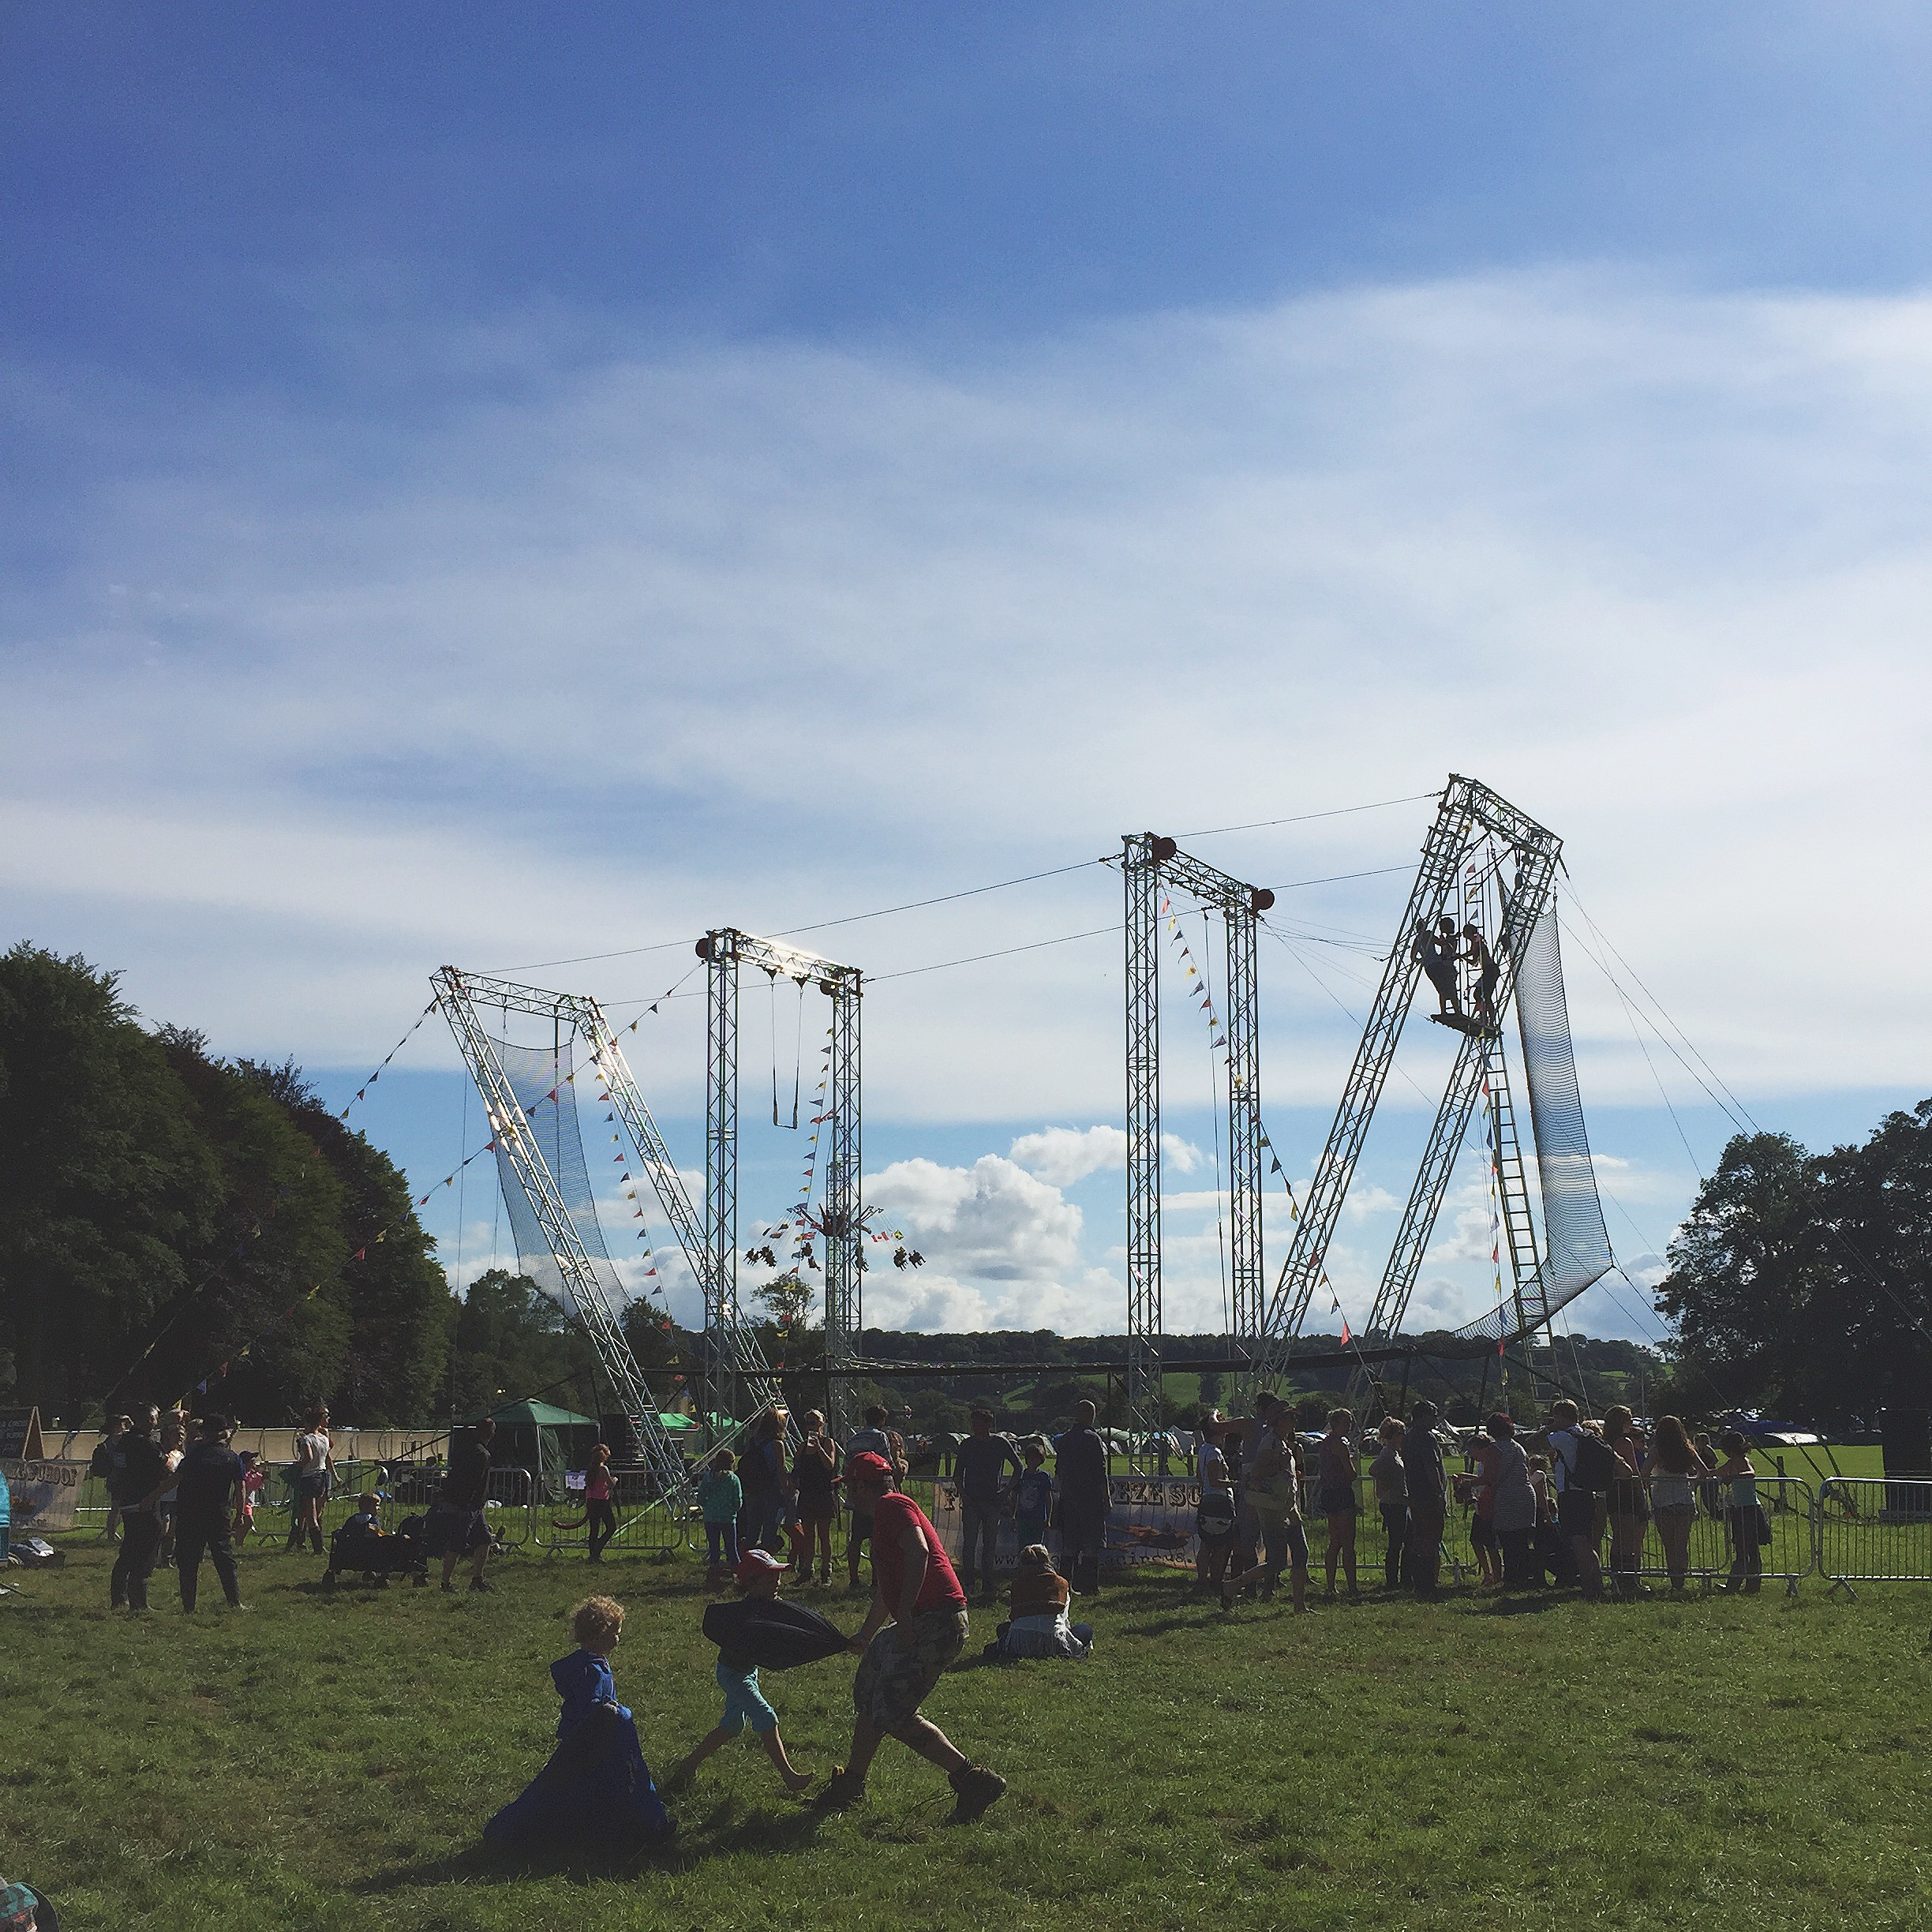 While everyone else got the chance to fly through the sky ona trapeze